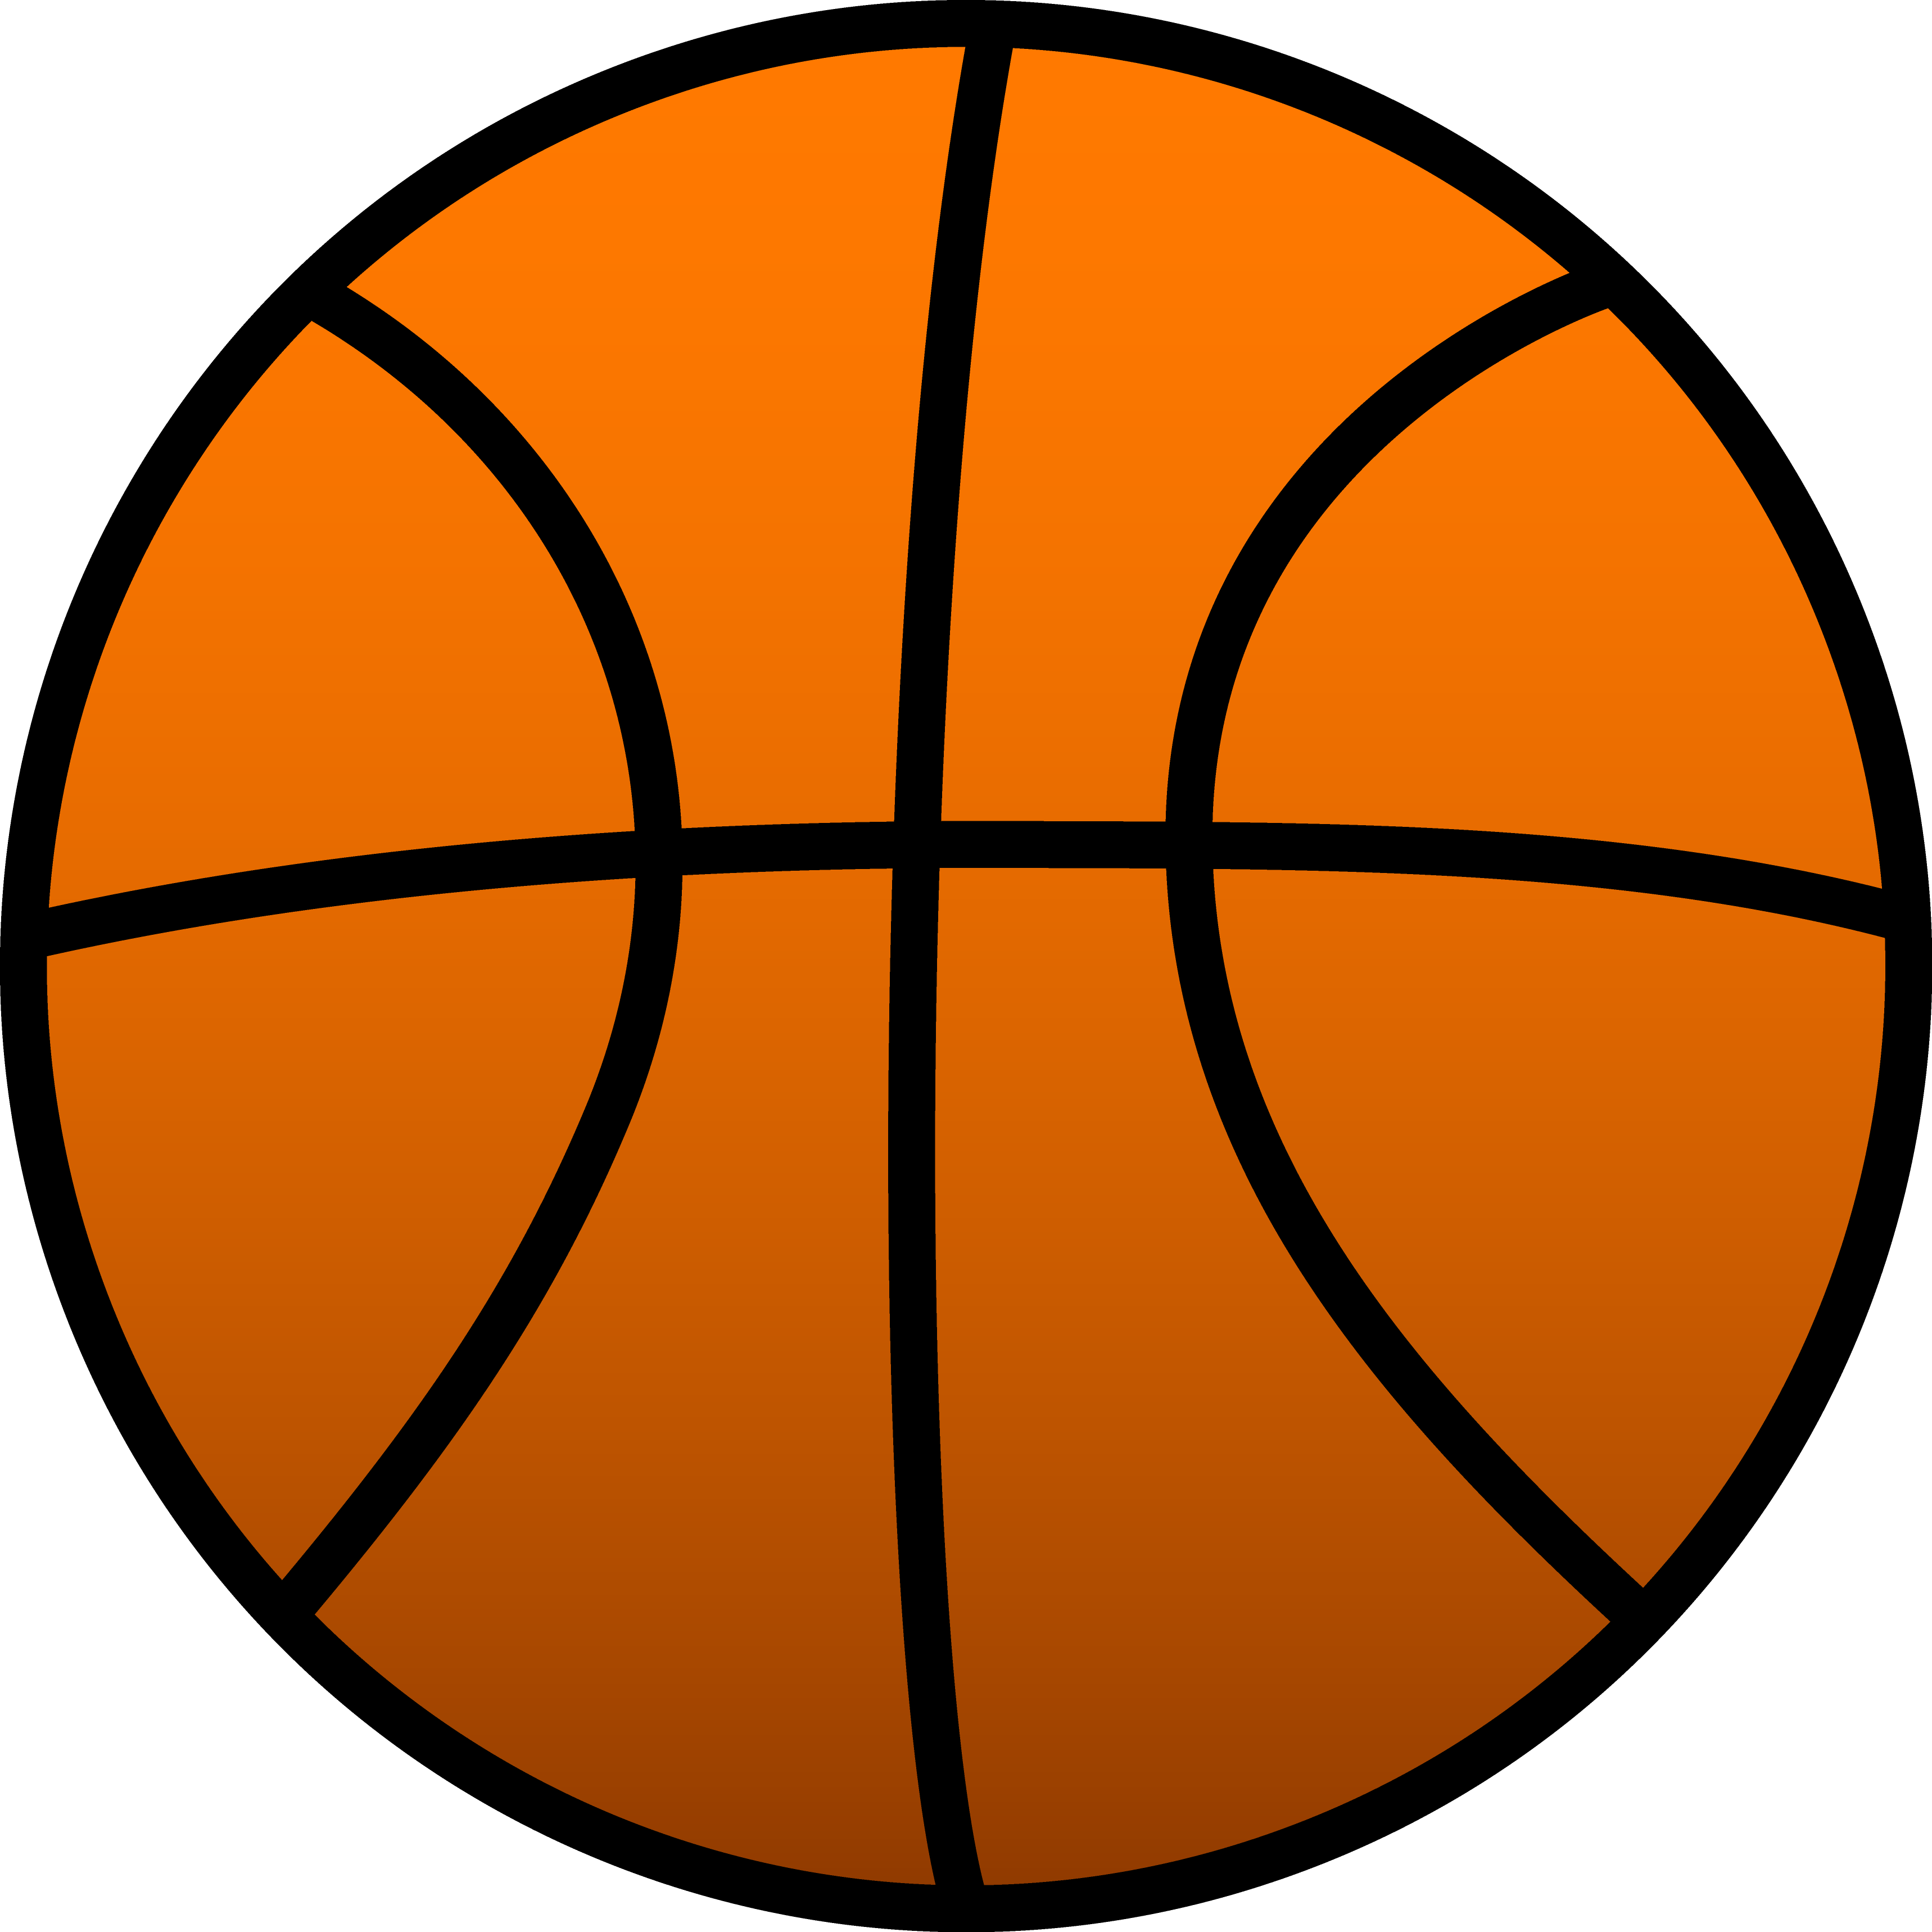 Basketball net clipart jpg Basketball Logos Clipart - Clipart Kid jpg